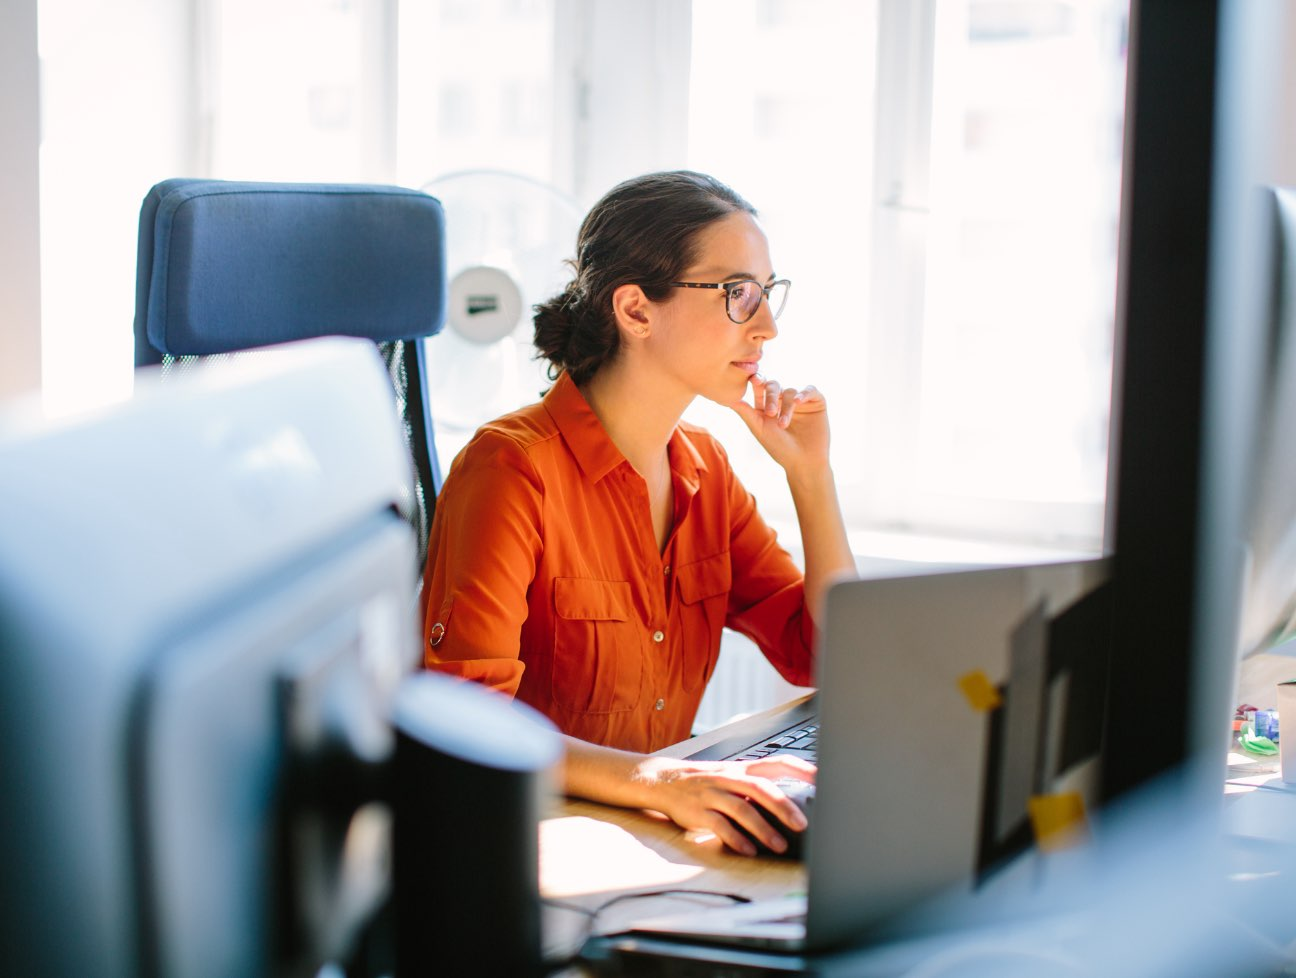 Woman wearing orange shirt and glasses staring off into her computer